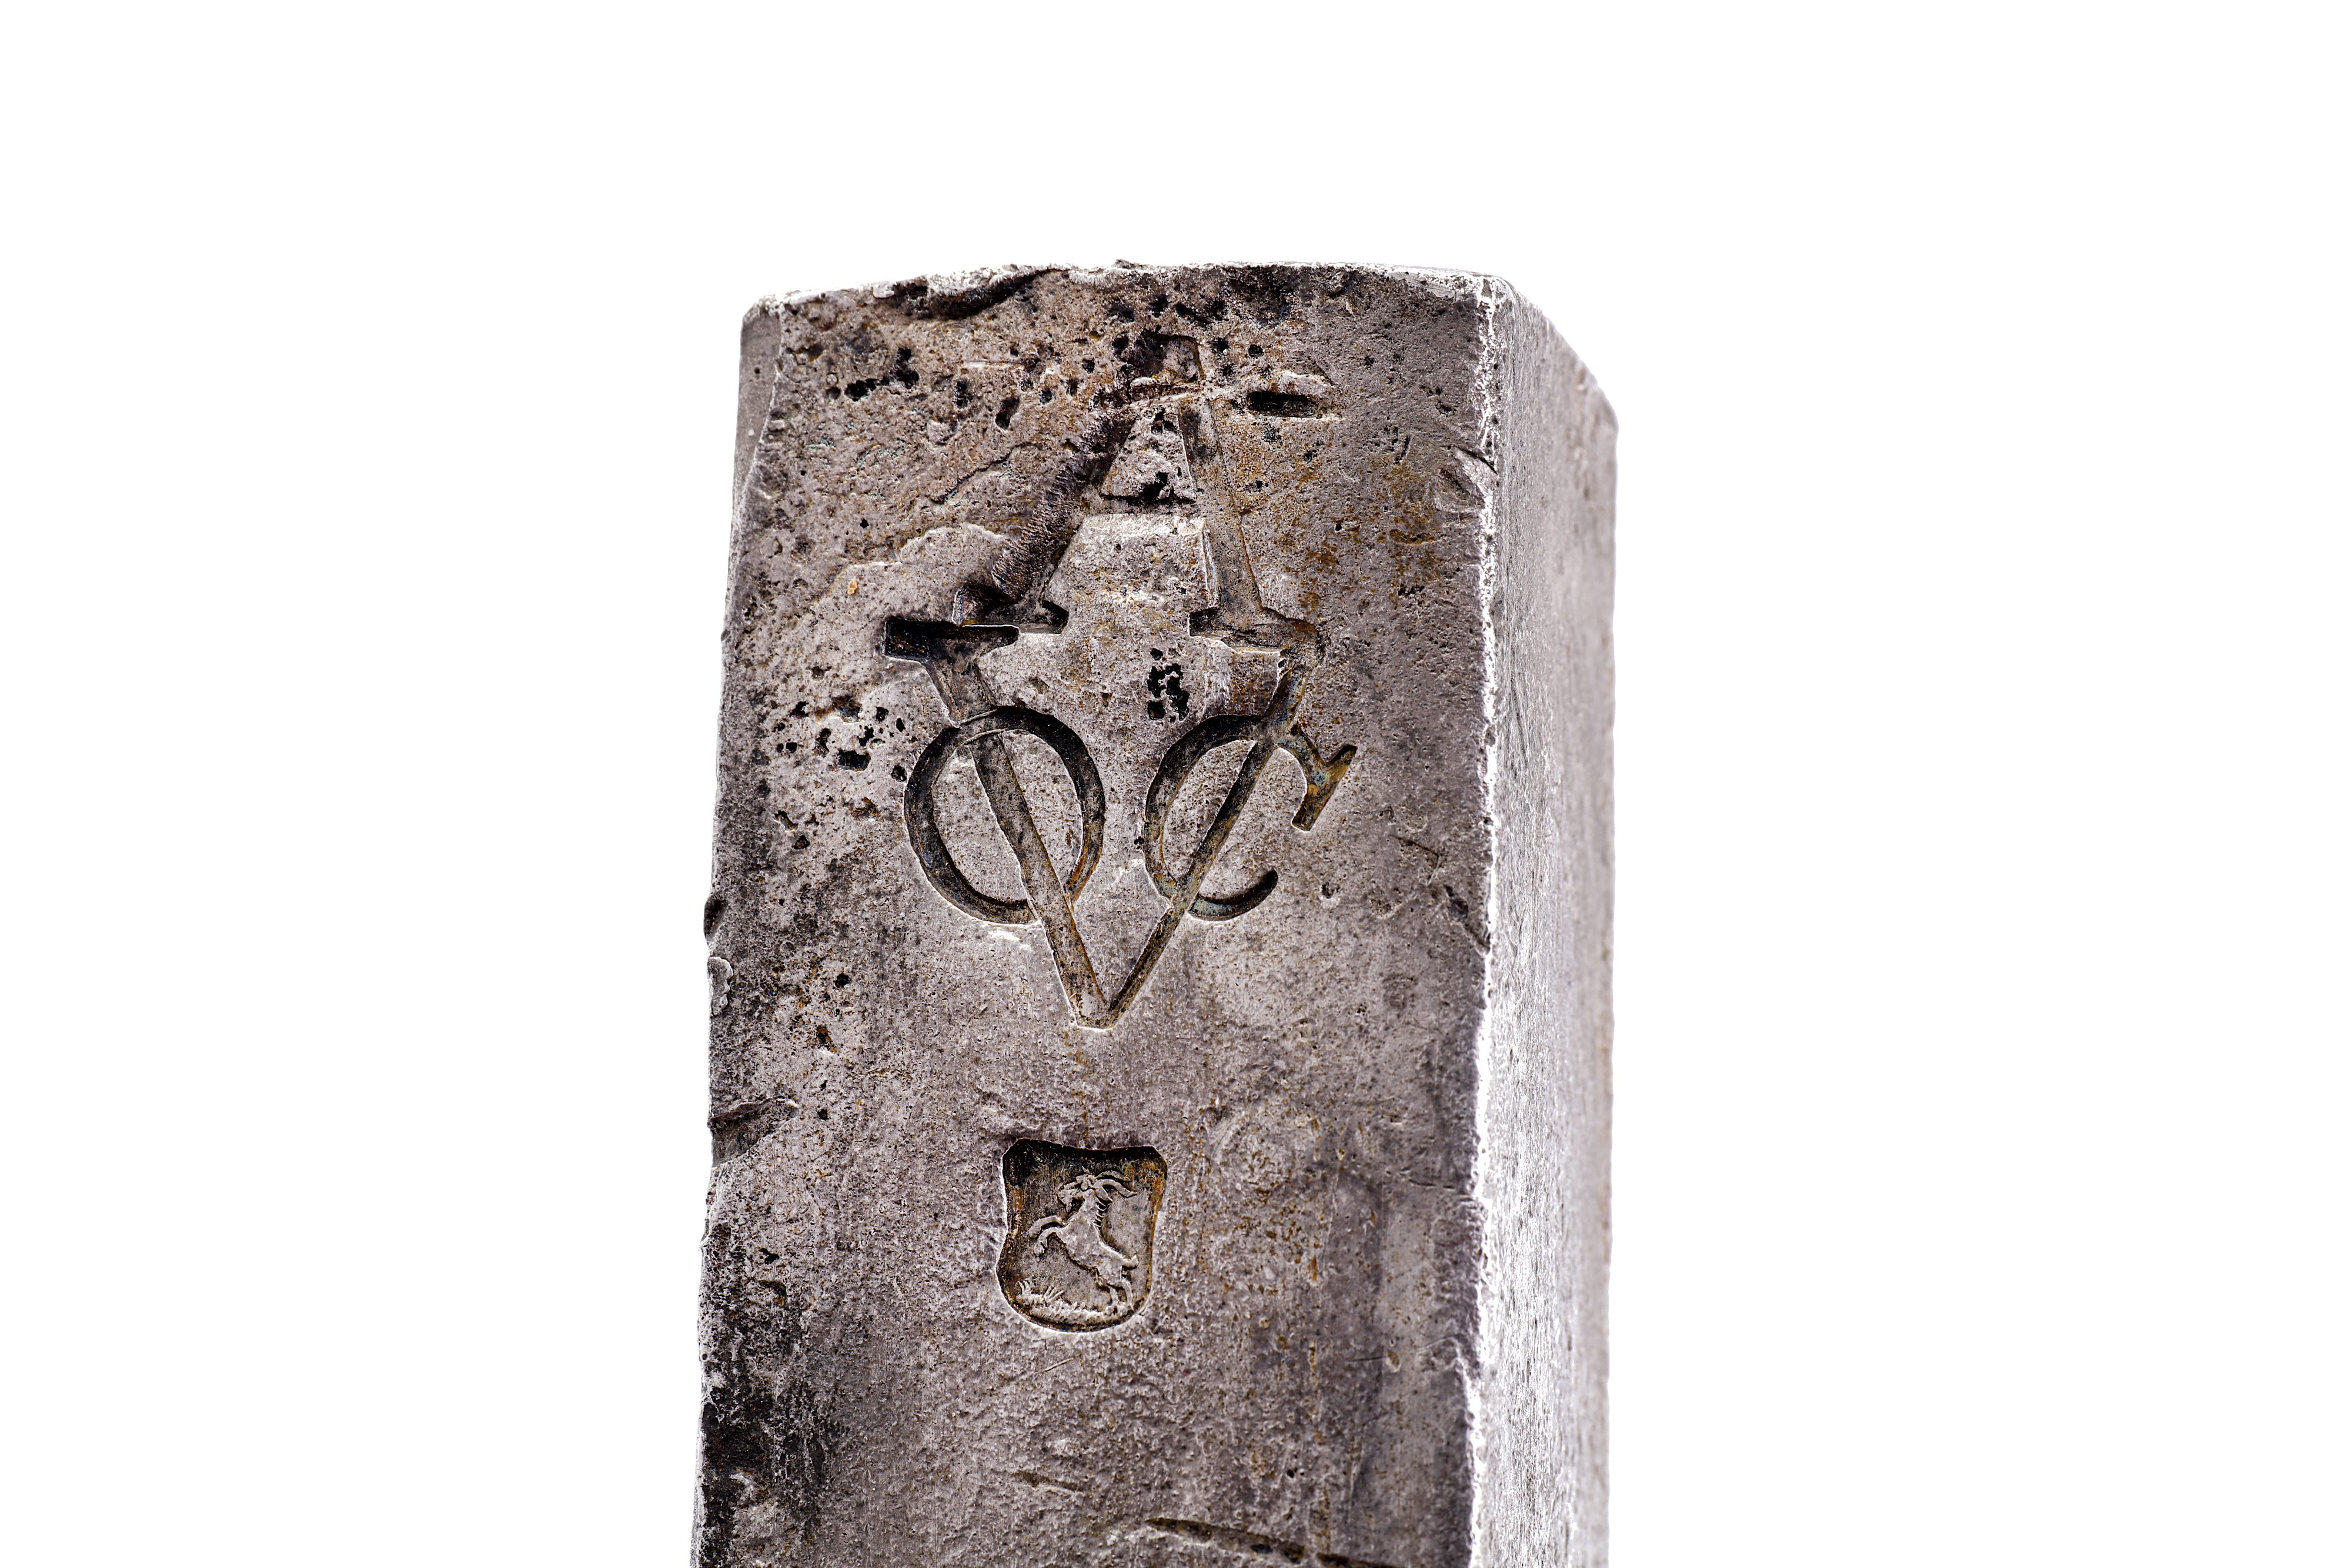 Lot 55 - A DUTCH EAST INDIA COMPANY (V.O.C.) SILVER INGOT FROM THE ROOSWIJK CARGO STAMPED WITH THE MARK OF TH